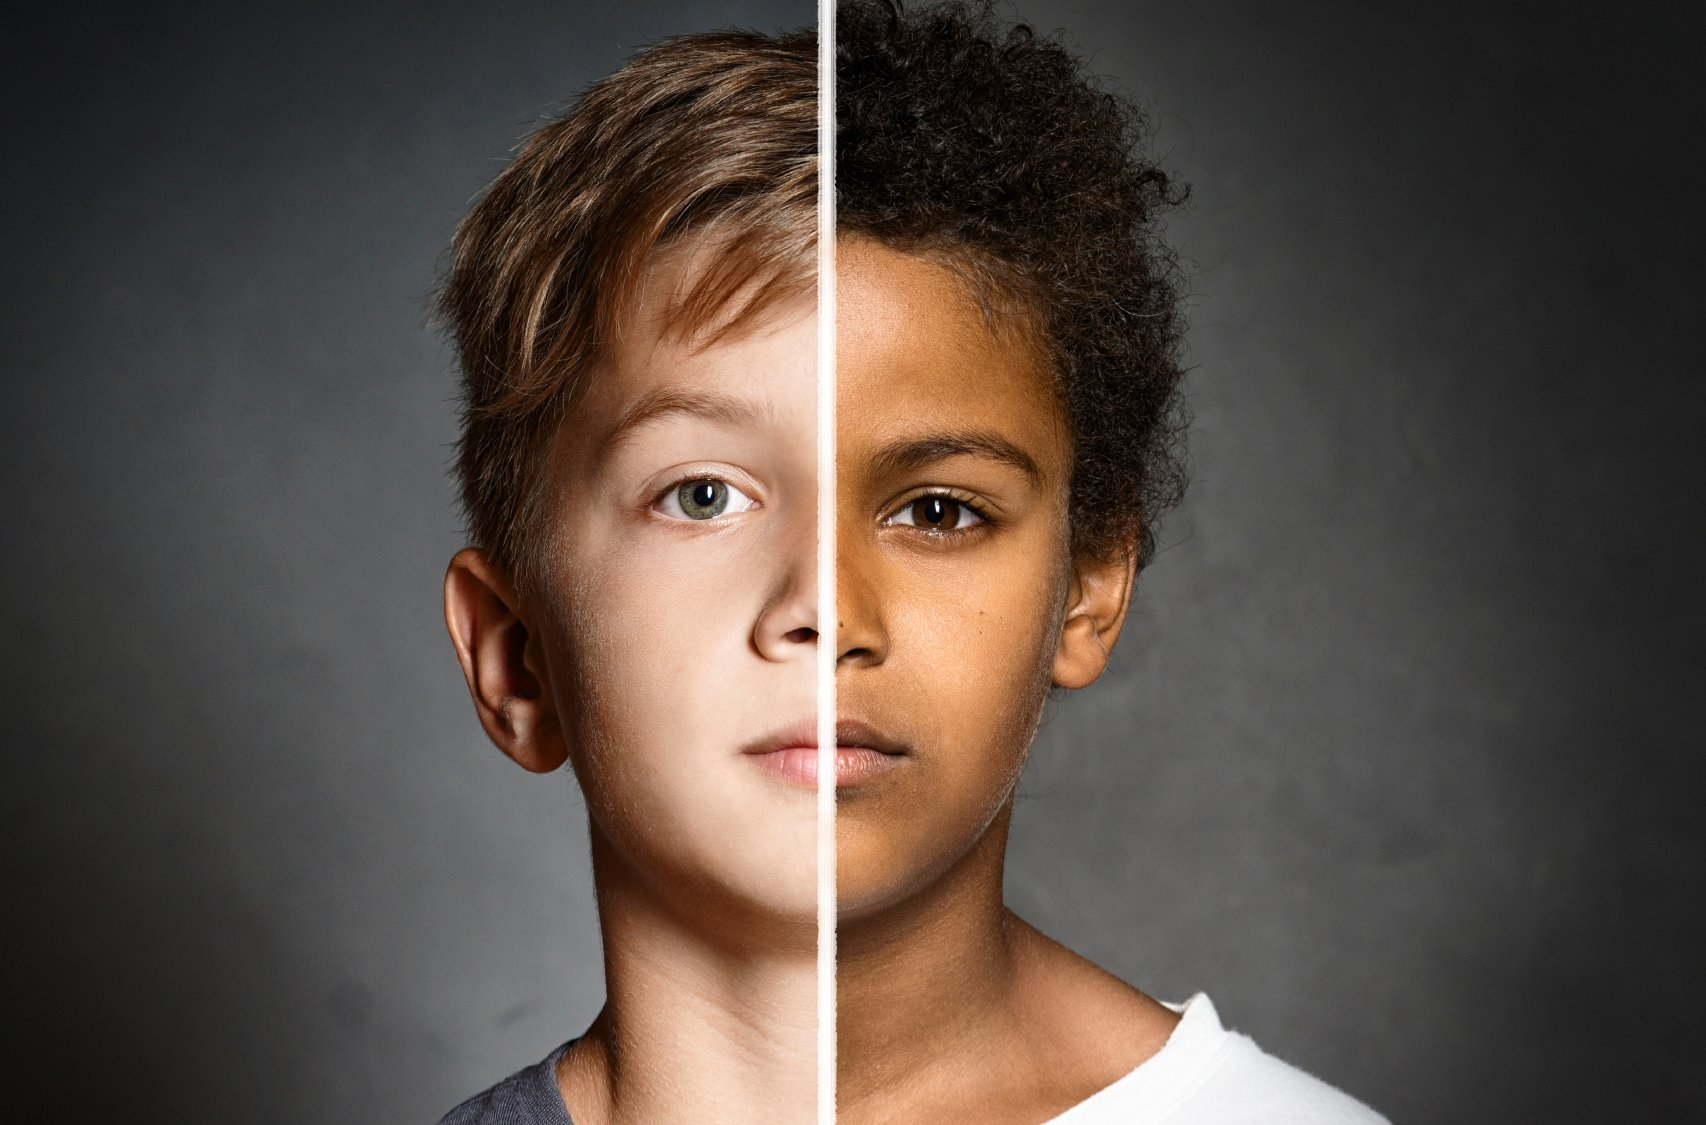 Studies Confirm Dehumanization Of Black >> 10 Insidious Ways White Supremacy Shows Up In Our Everyday Lives